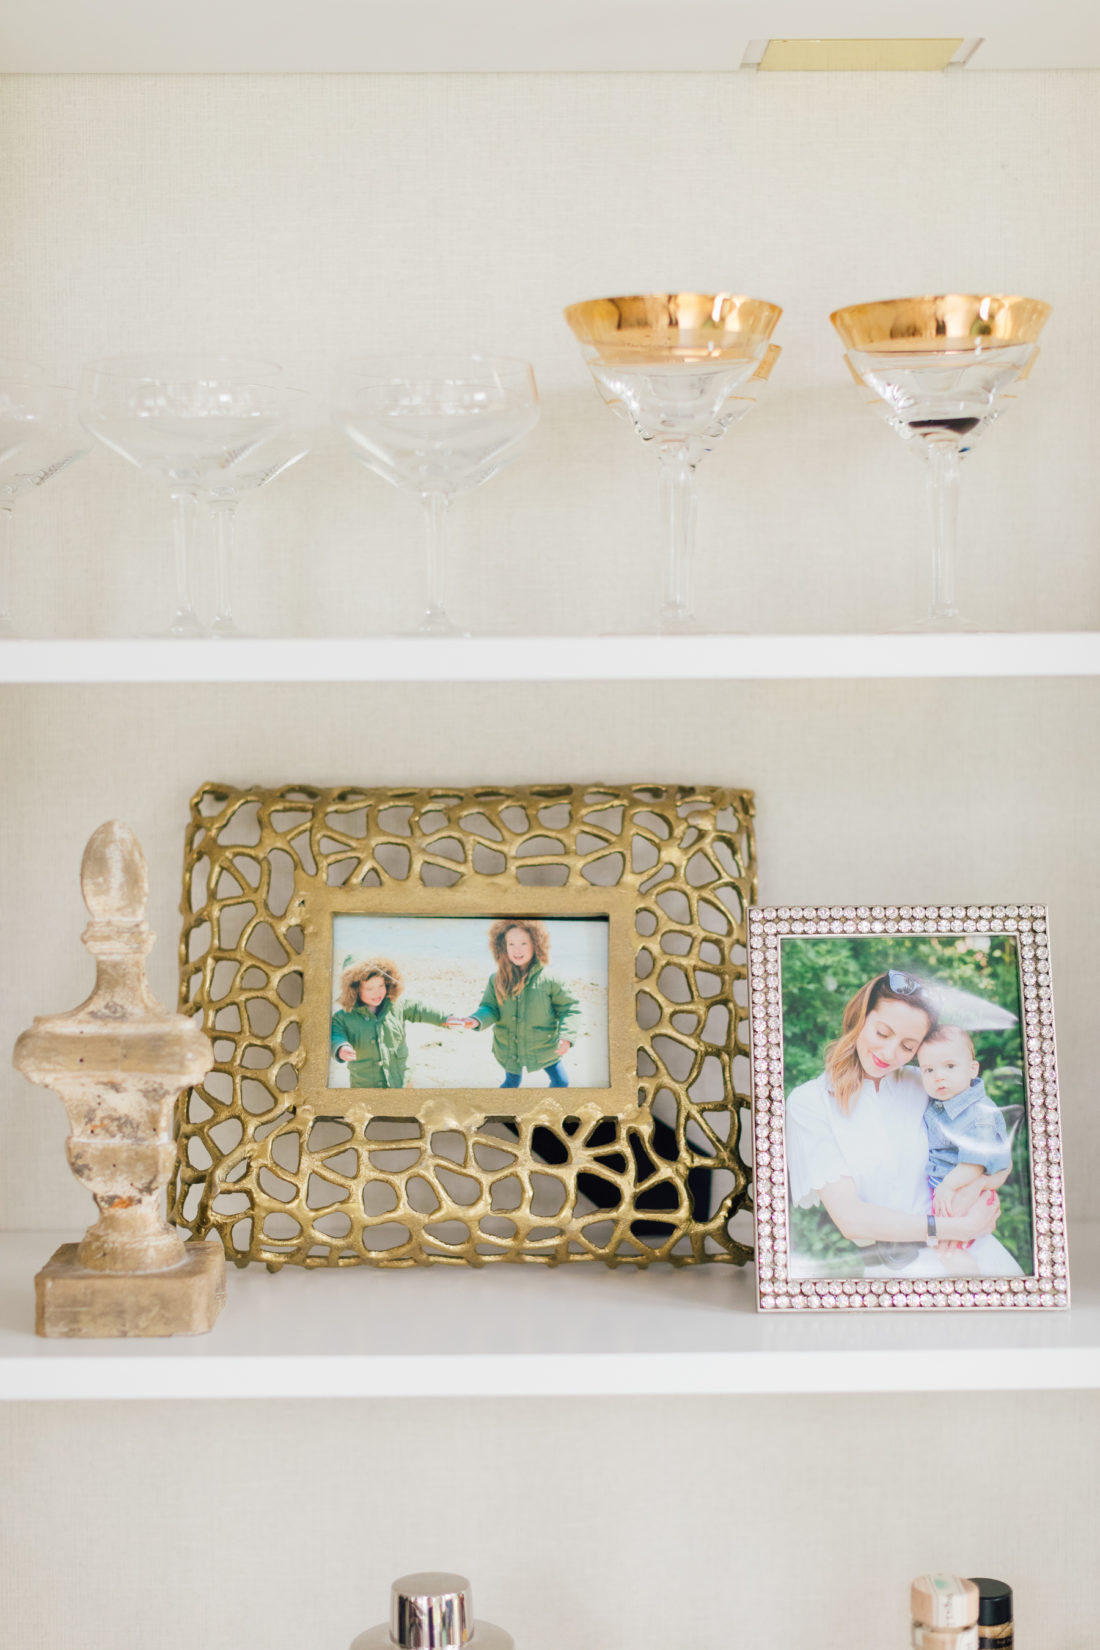 Details on the shelves in Eva Amurri Martino's newly renovated dining room